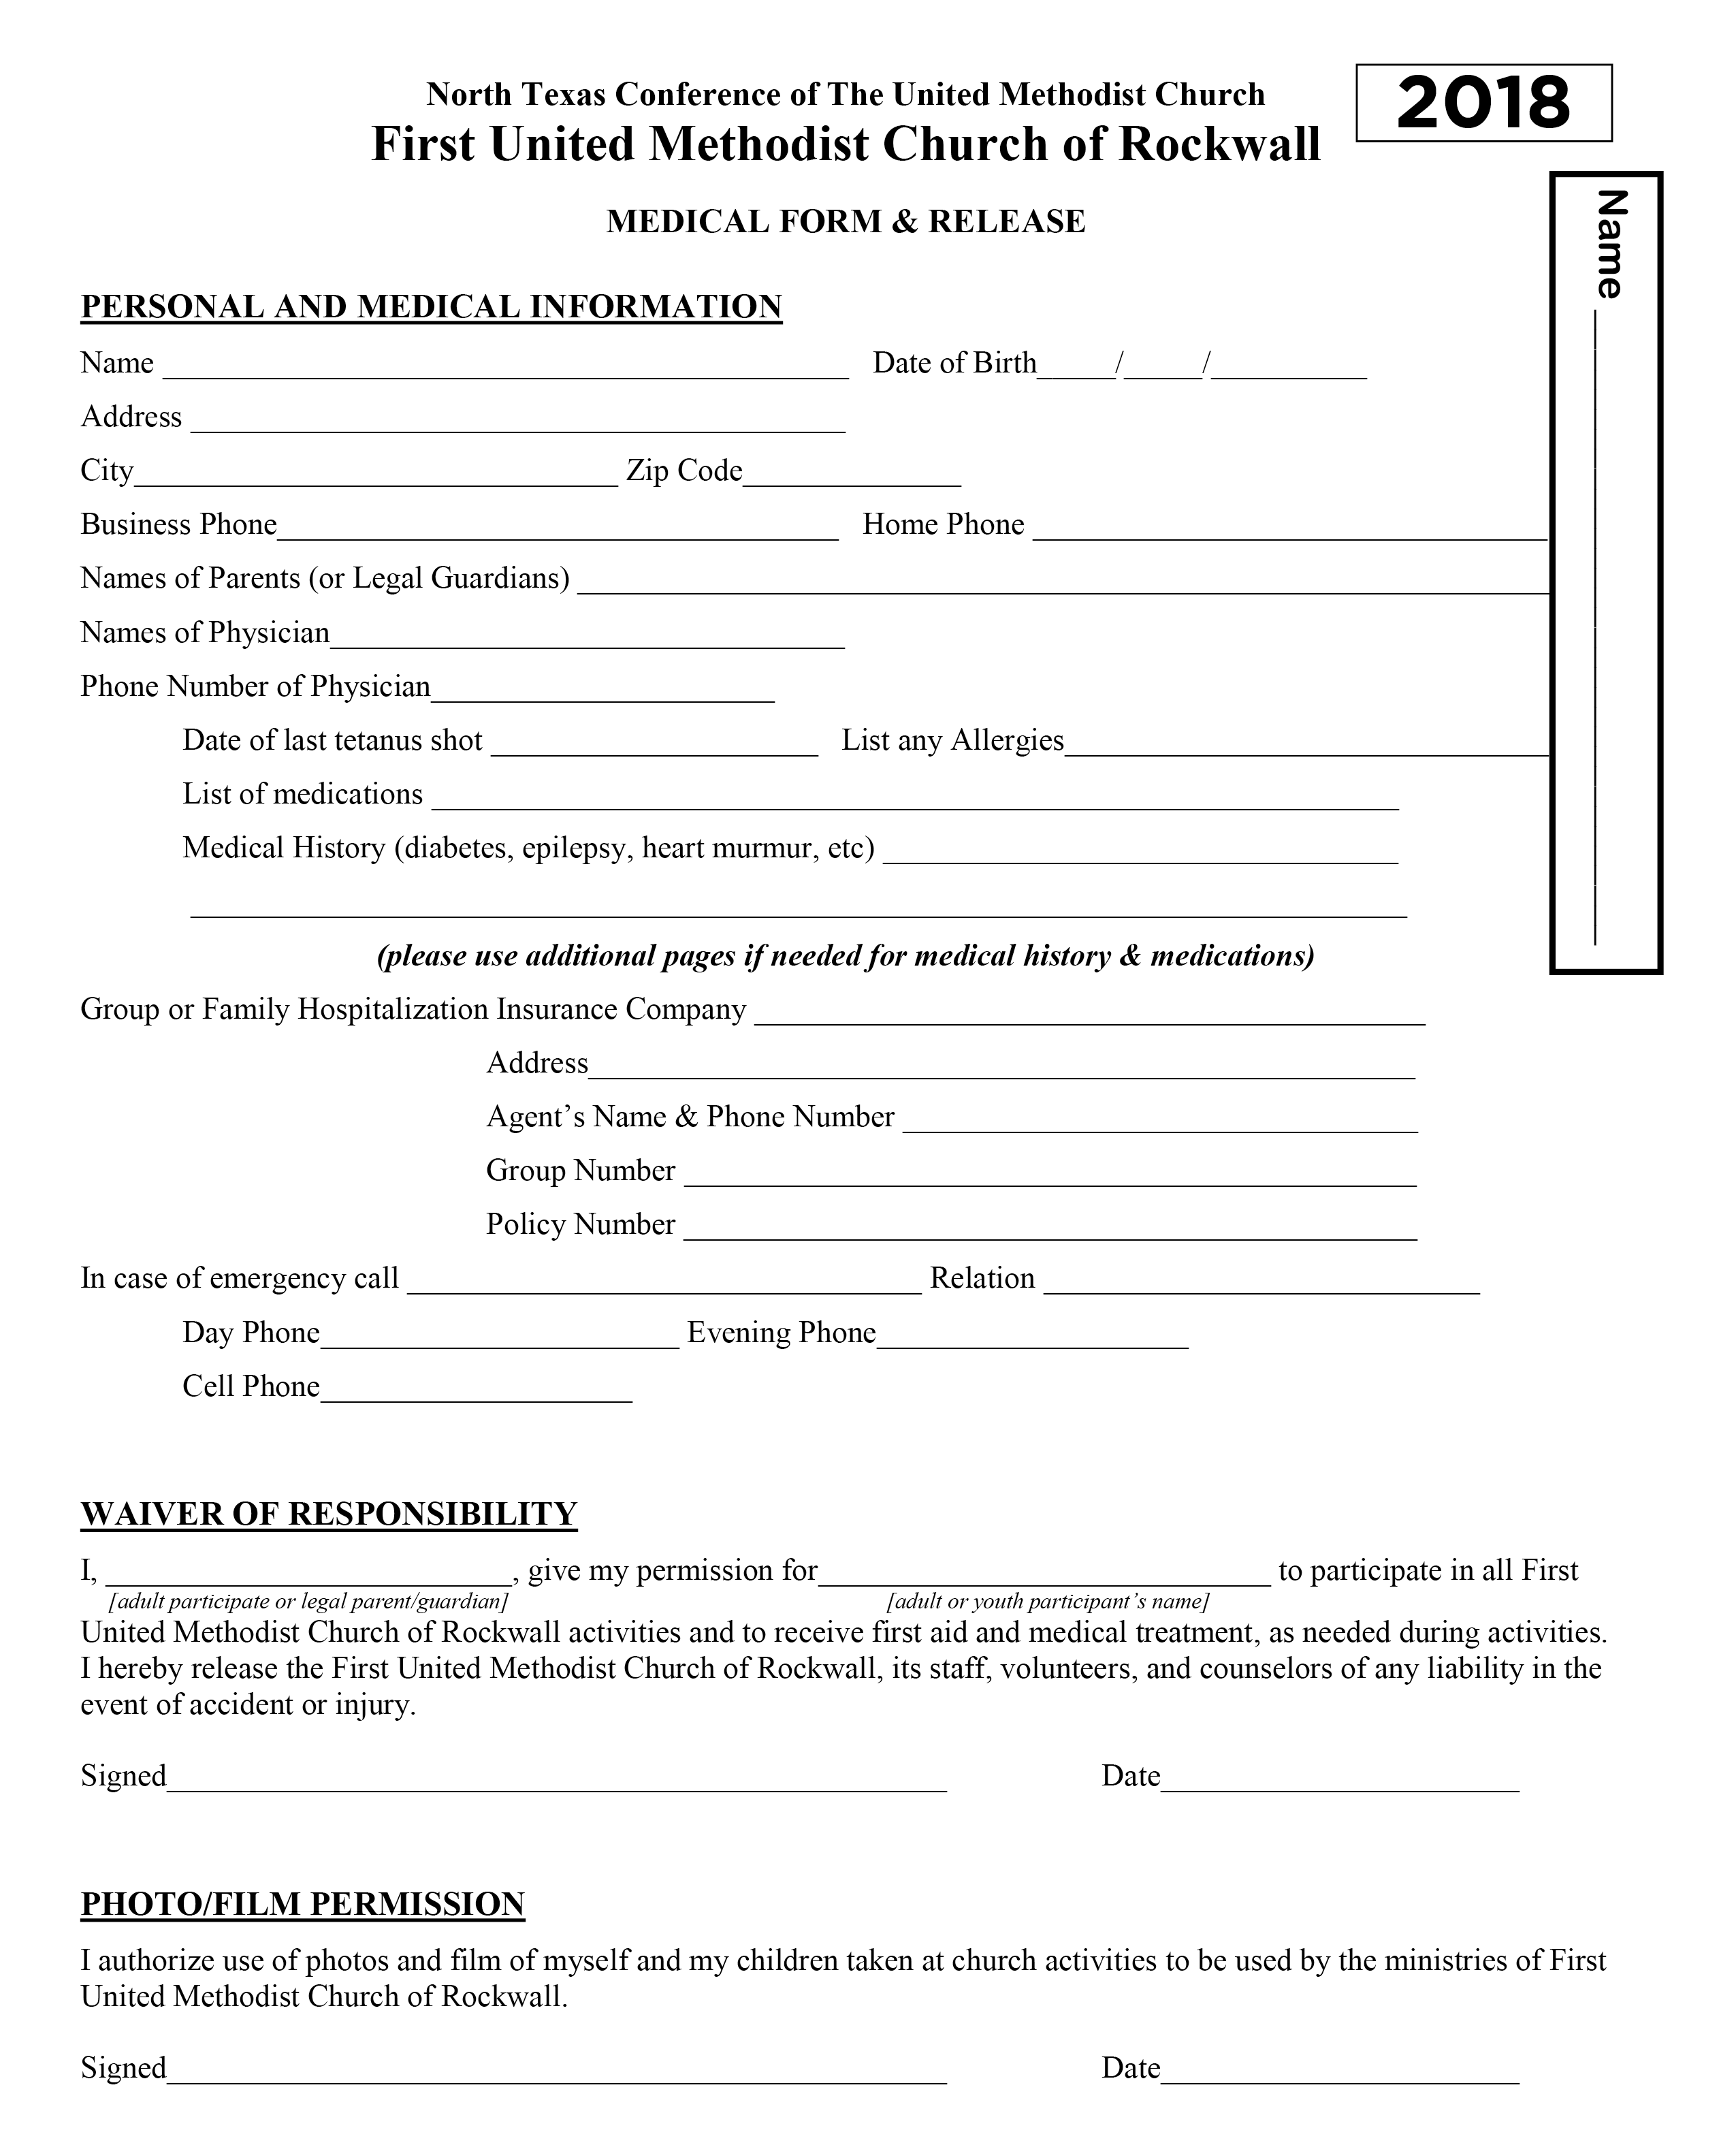 Youth Medical Release Form | First Rockwall